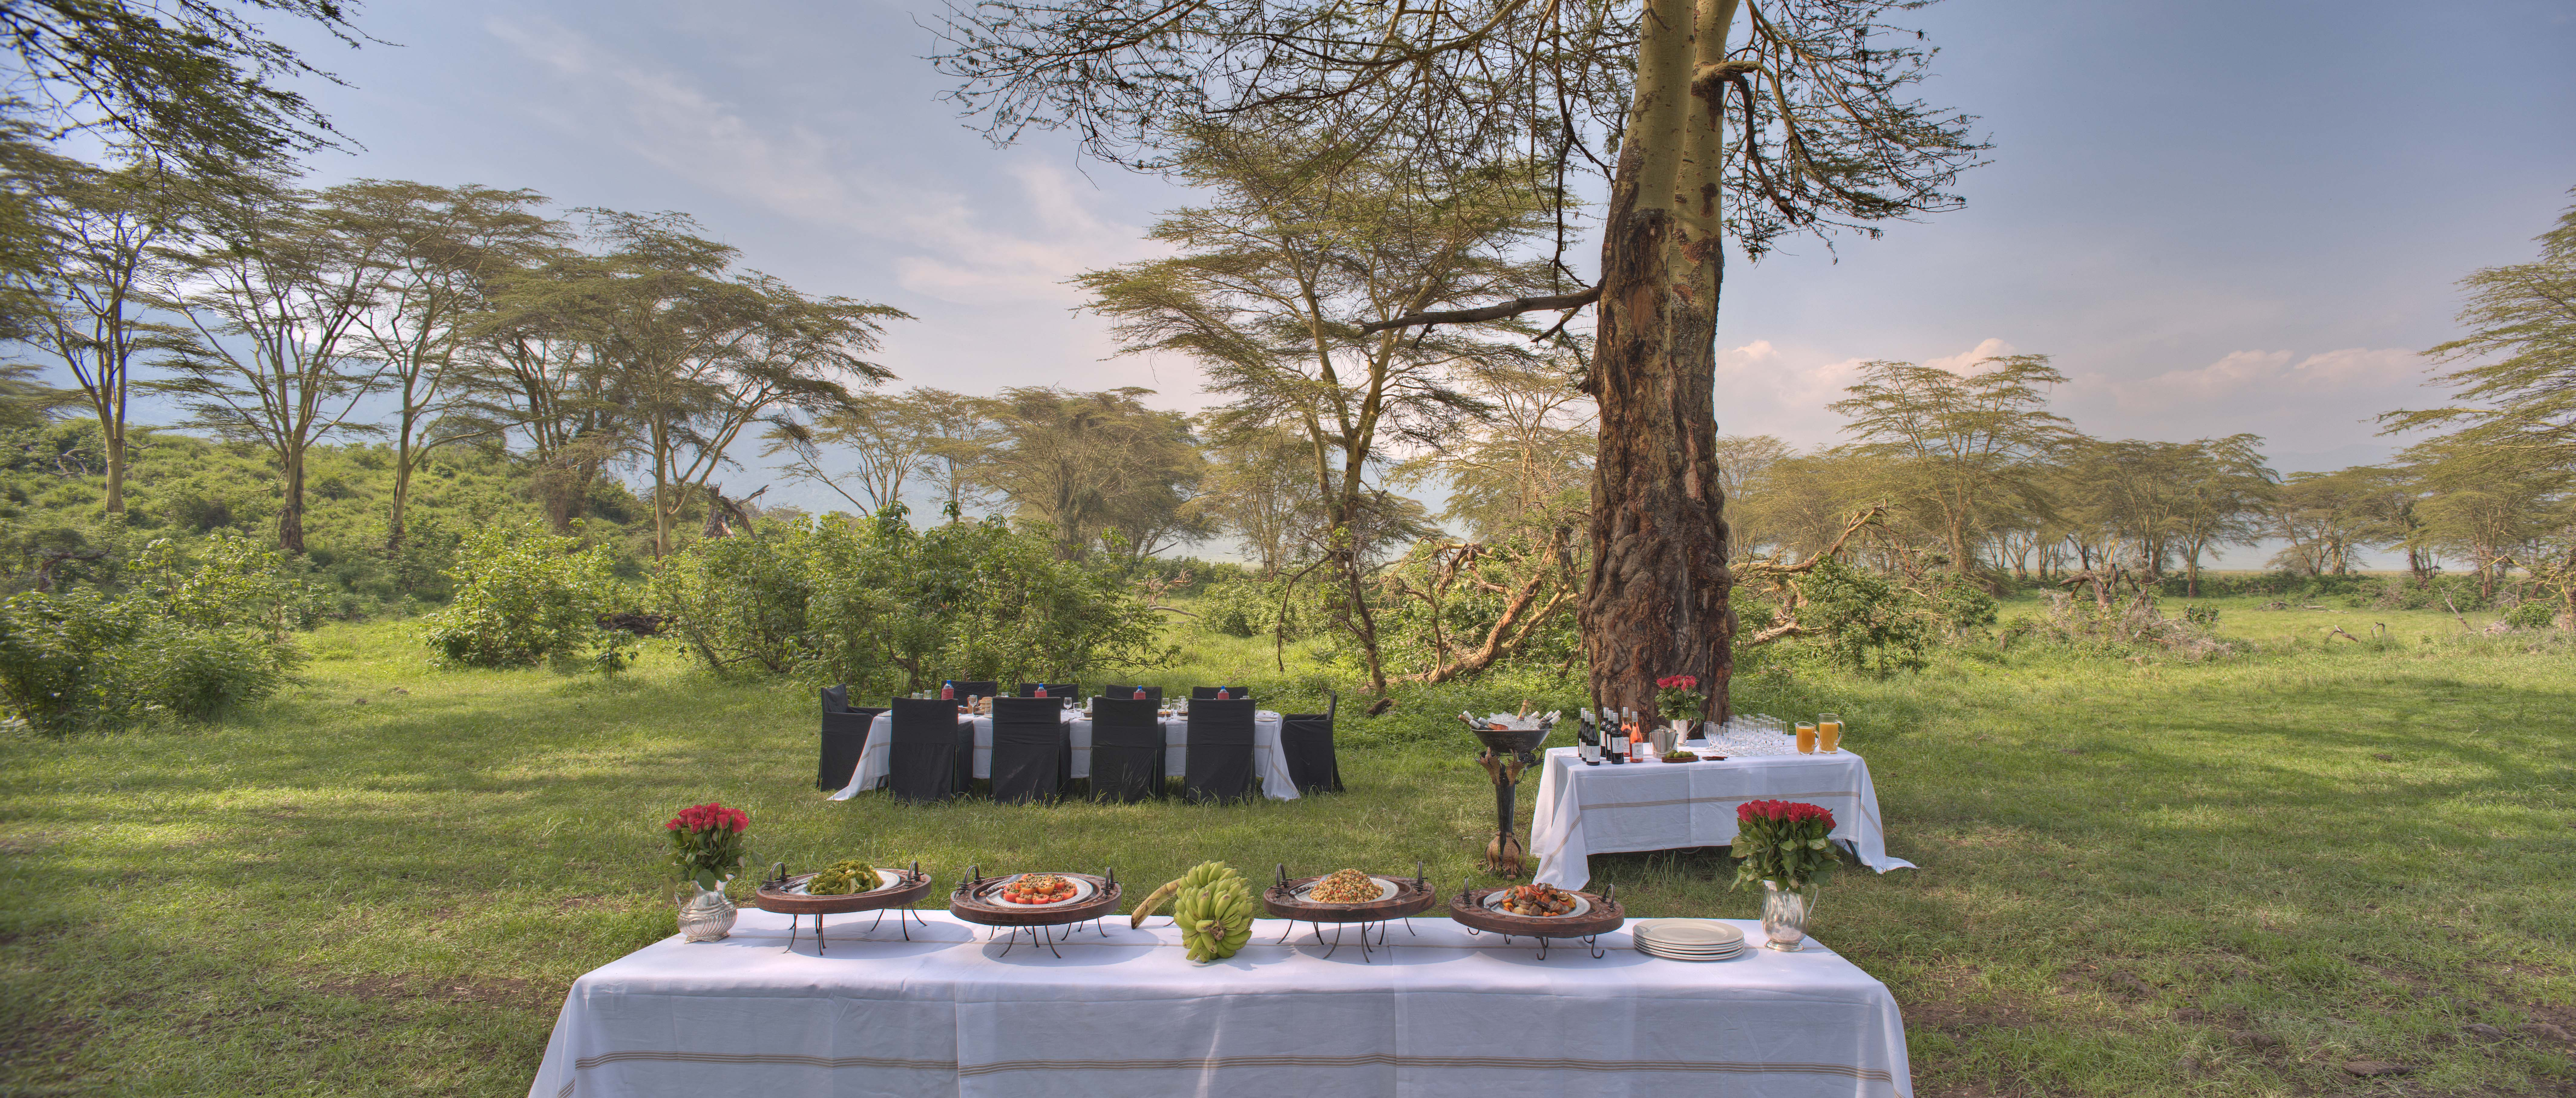 Ngorongoro Crater lodge_crater floor banquet